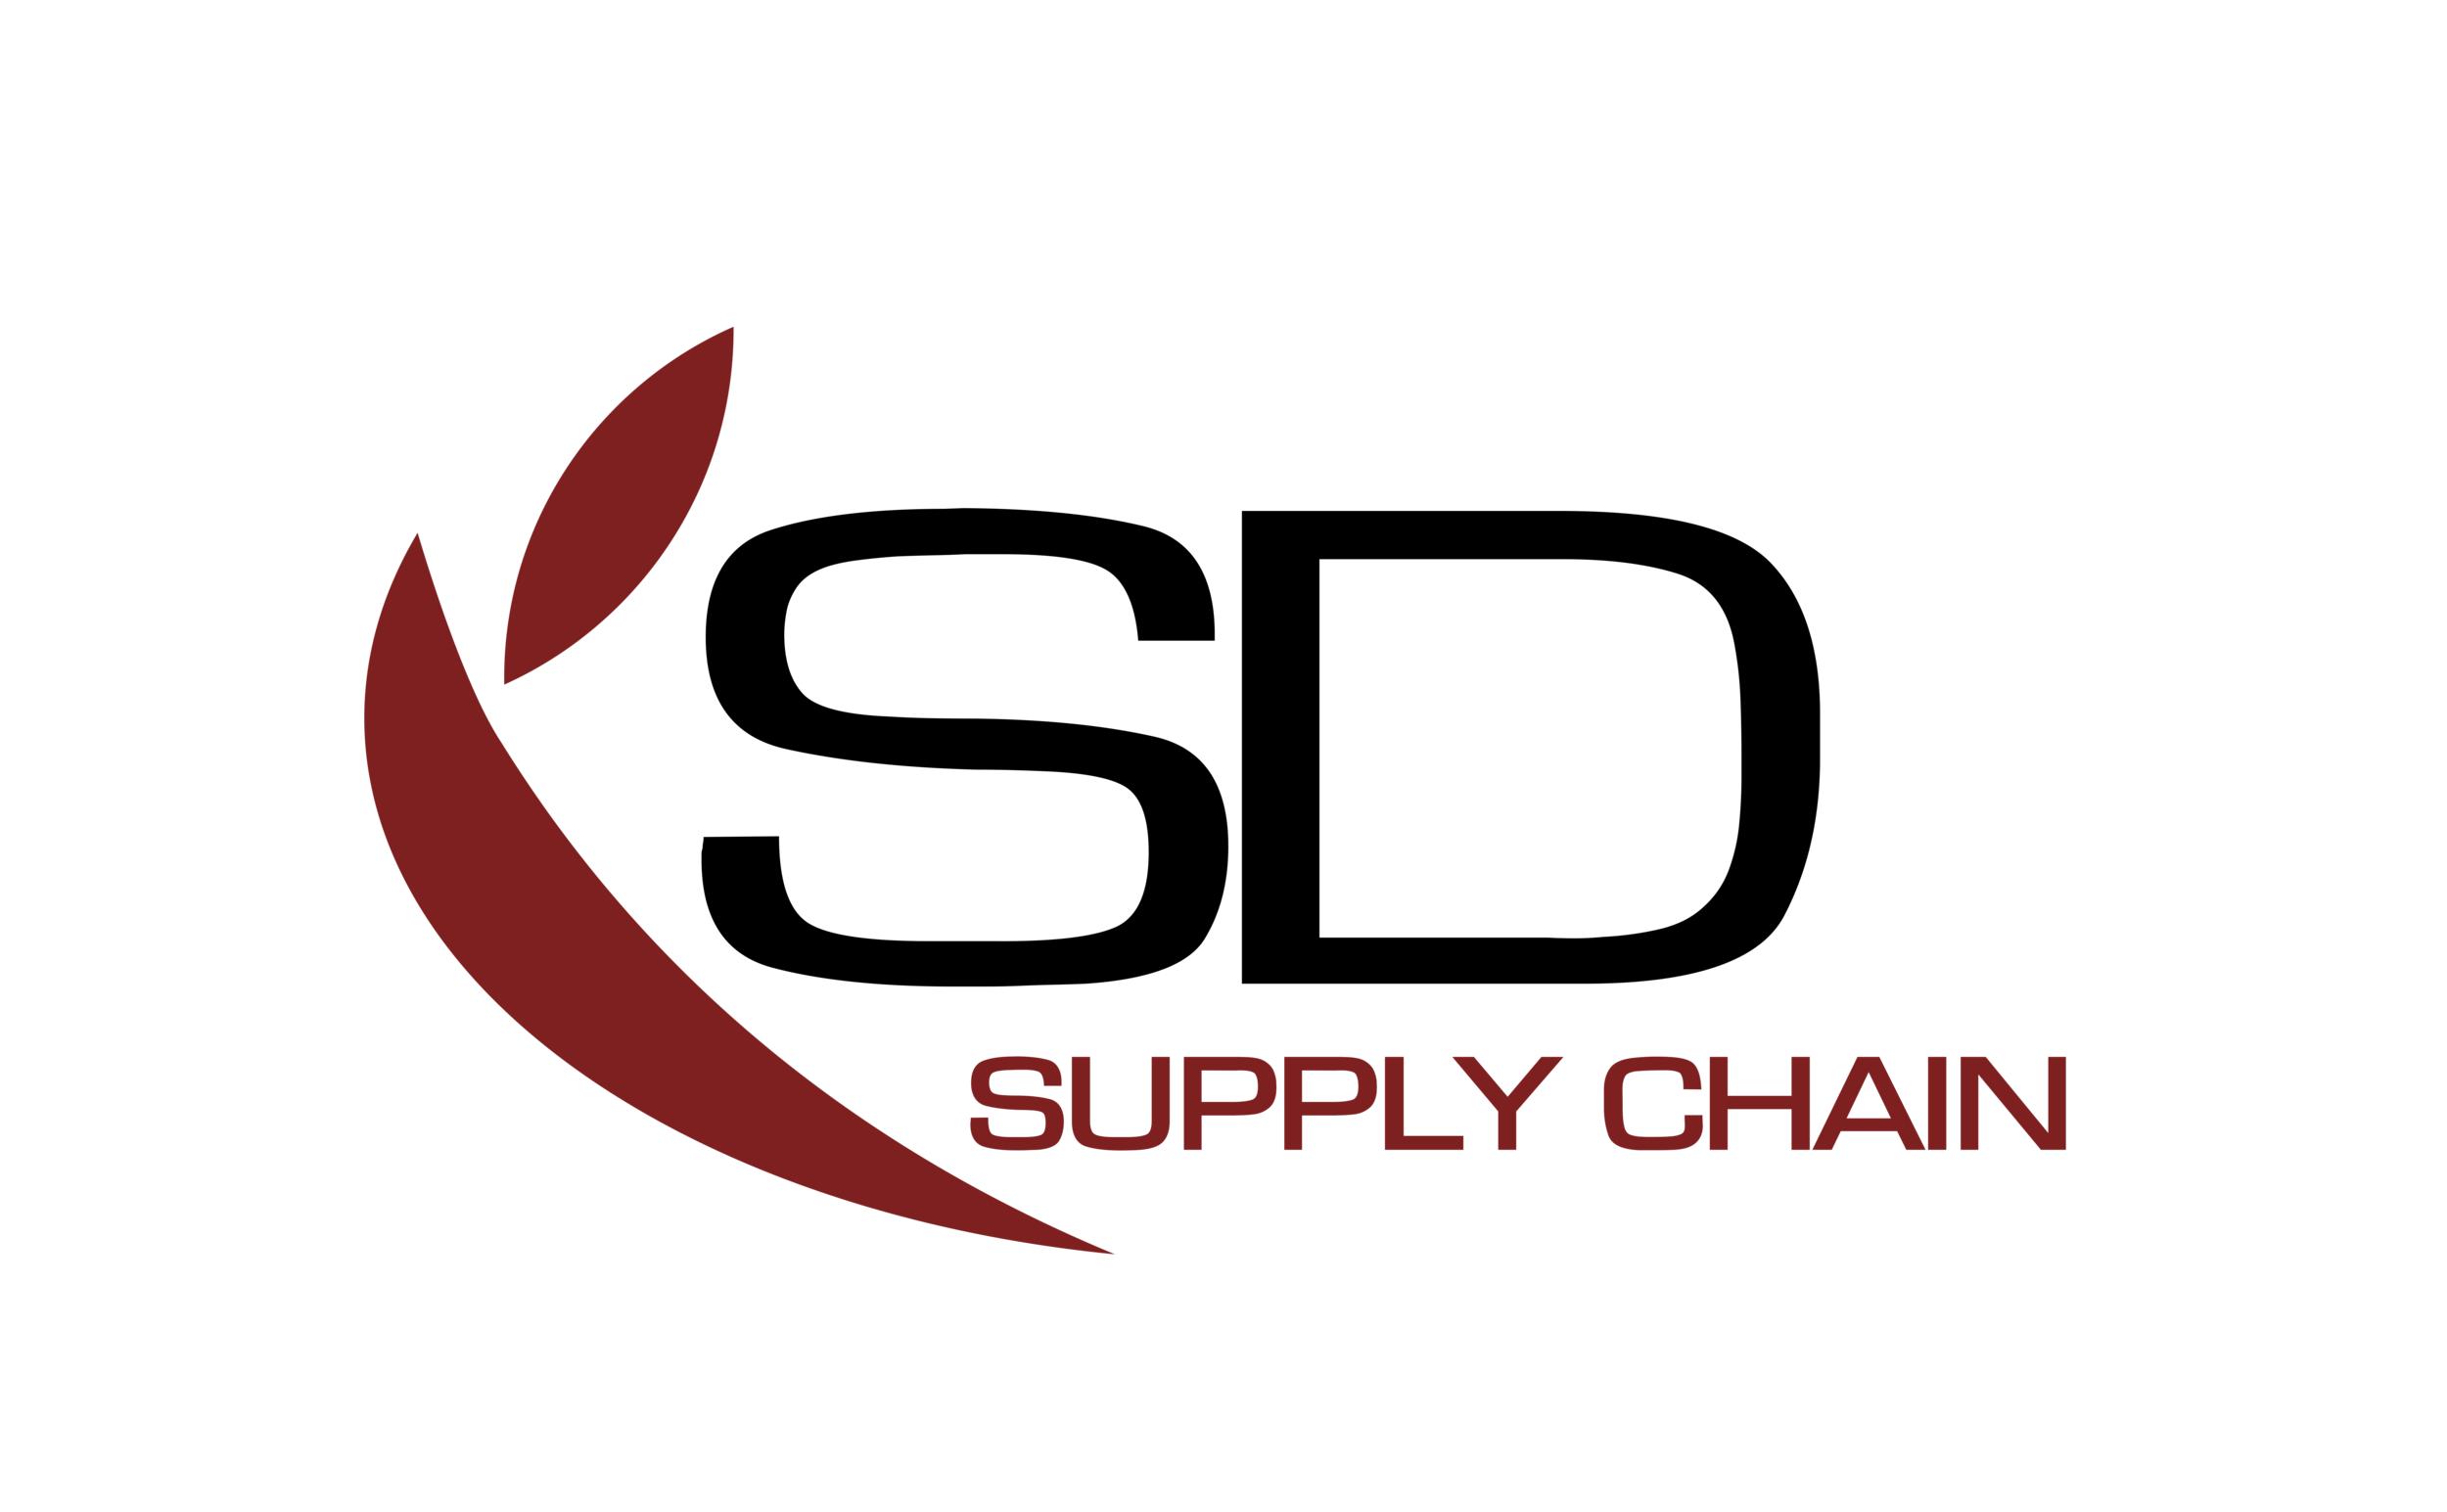 supplychain-rgb_00000.png